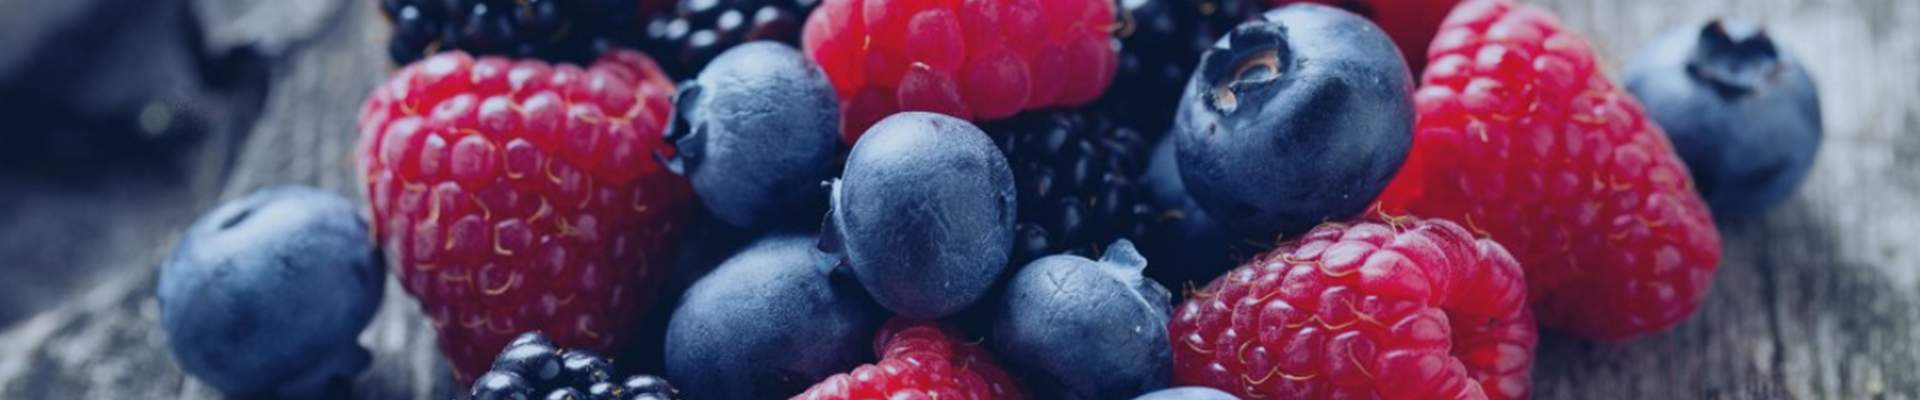 Better_Pesticides_Testing_in_Berries_1920x400.jpg